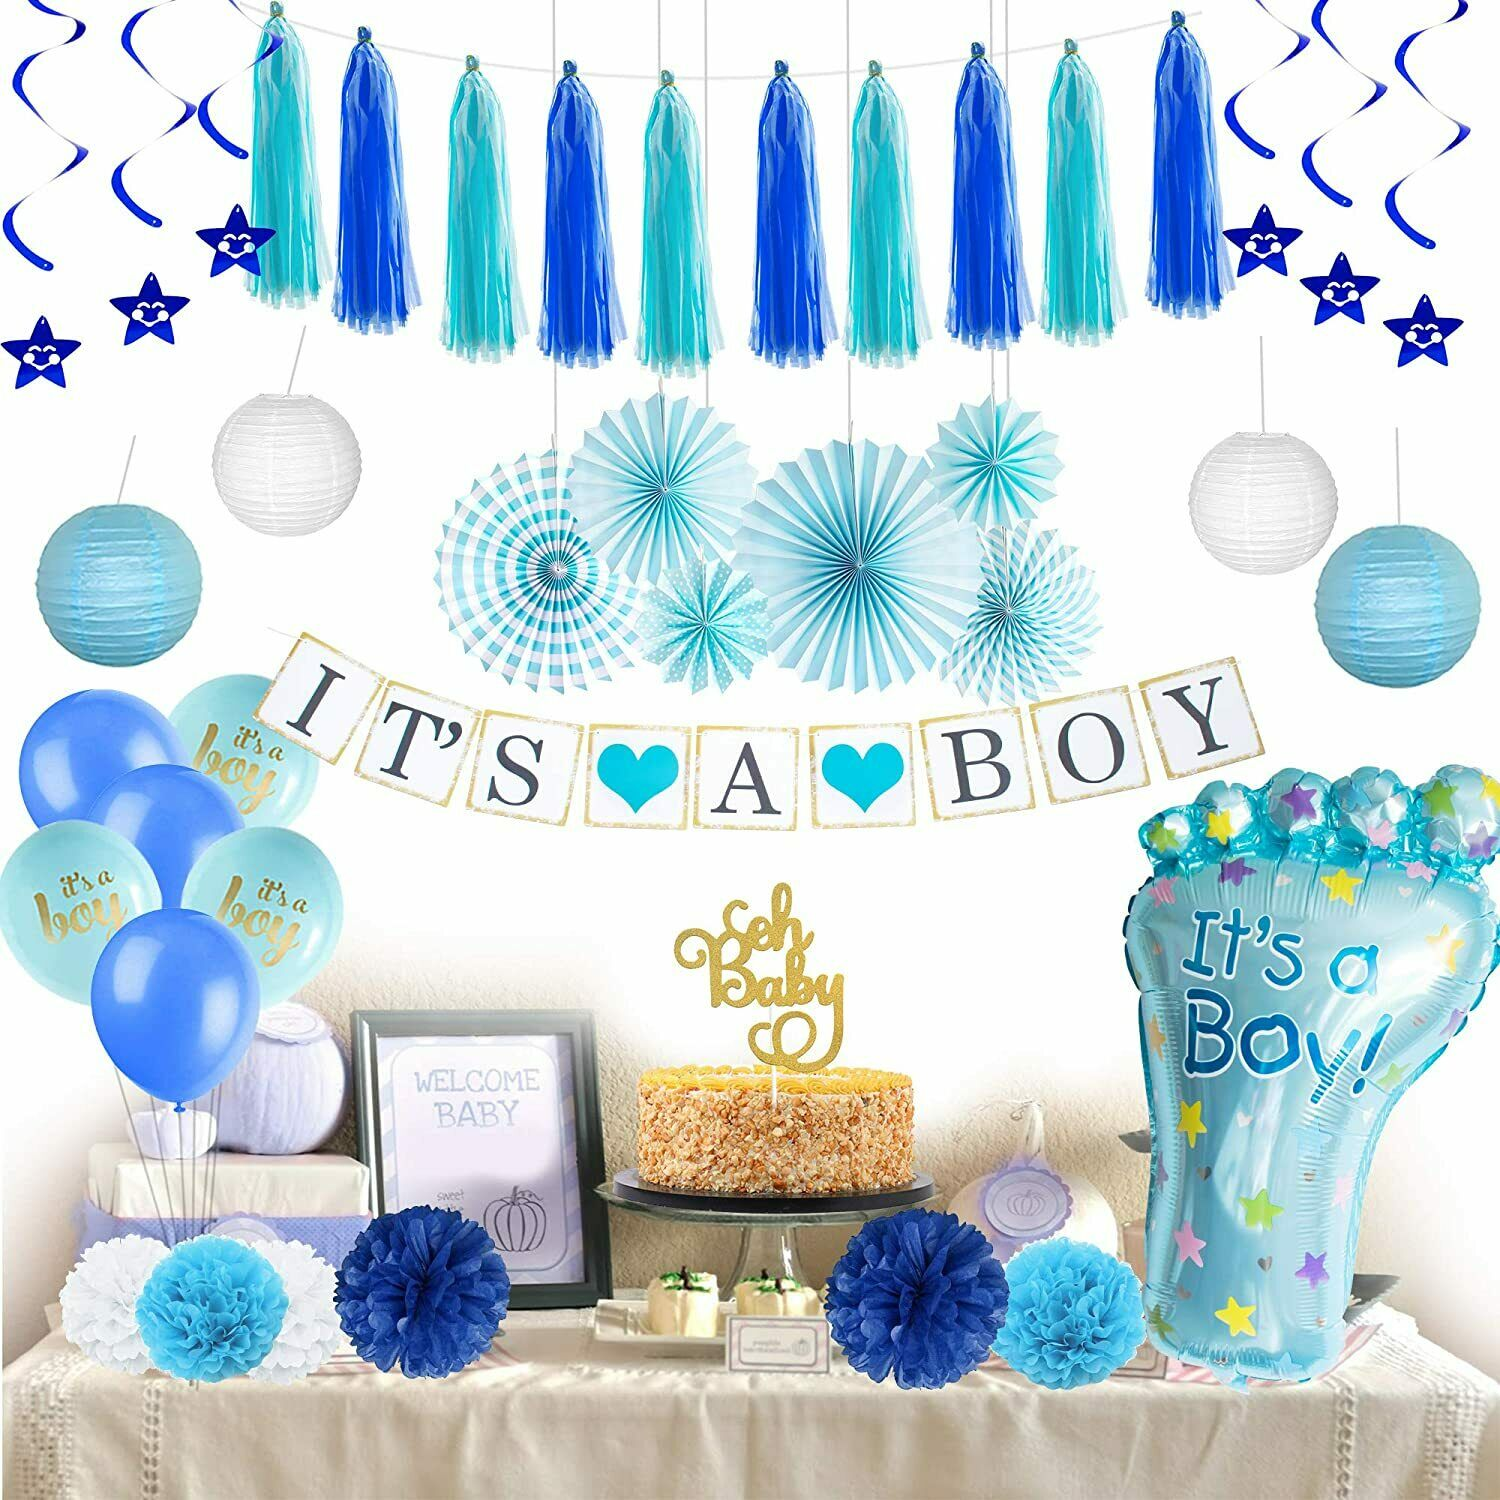 41 PCS Baby Shower Decorationsfor Boy Baby Shower Décor Boys Complete Premium Greeting Cards & Party Supply